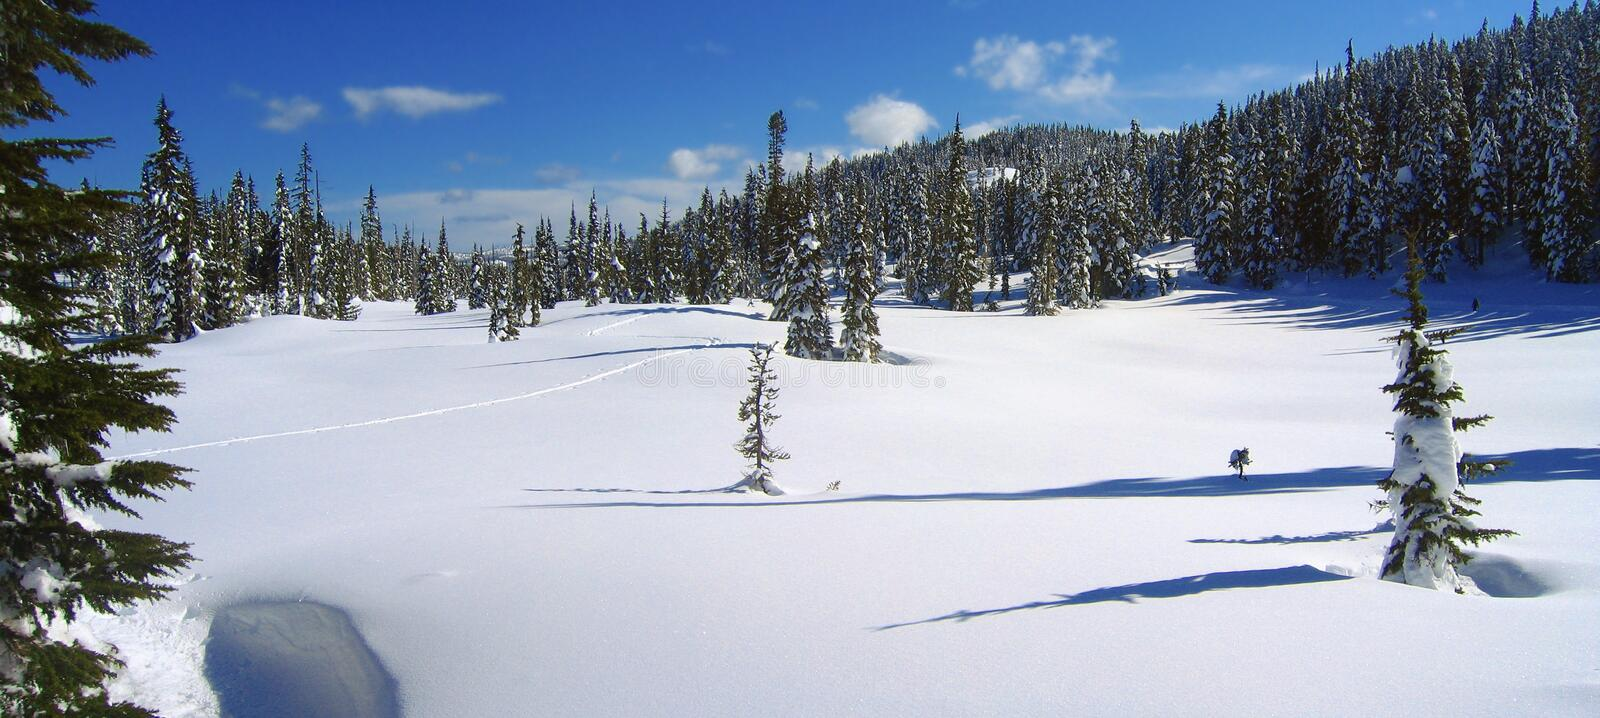 Ski Track in Paradise Meadows, Forbidden Plateau, Strathcona Provincial Park, Vancouver Island, British Columbia, Canada. Cross-country ski track meanders stock photos